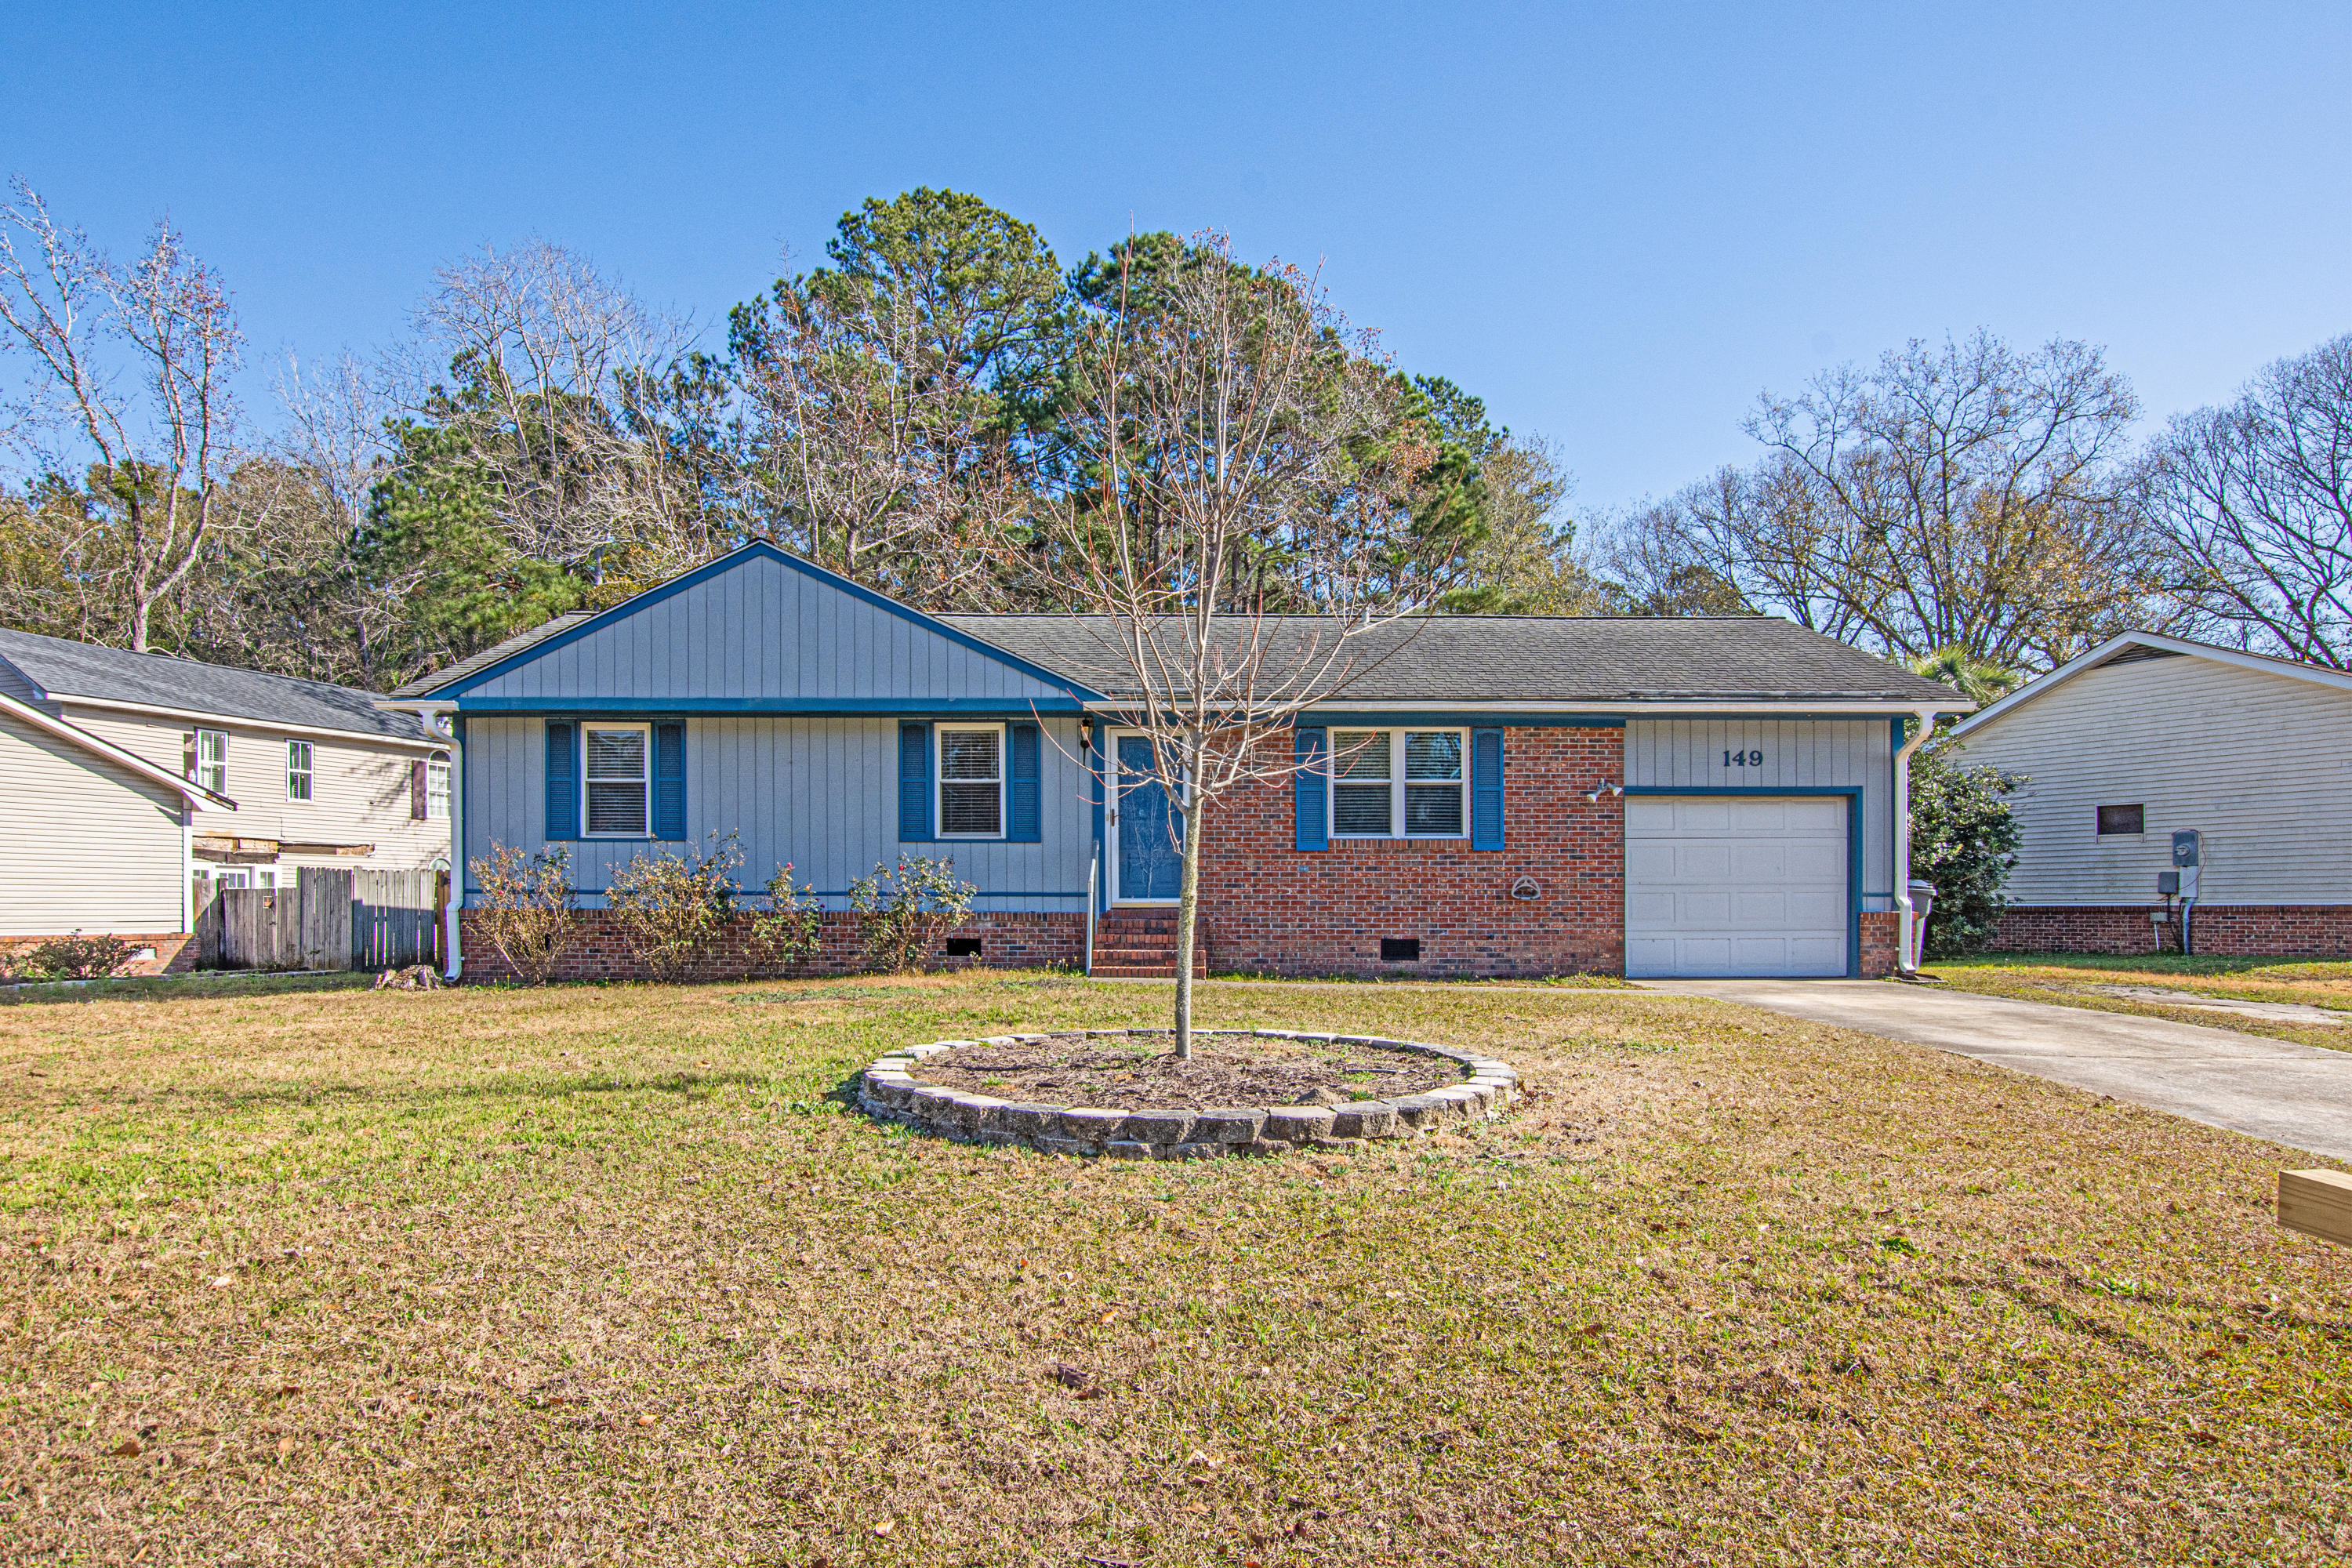 149 Heather Drive Summerville, Sc 29486